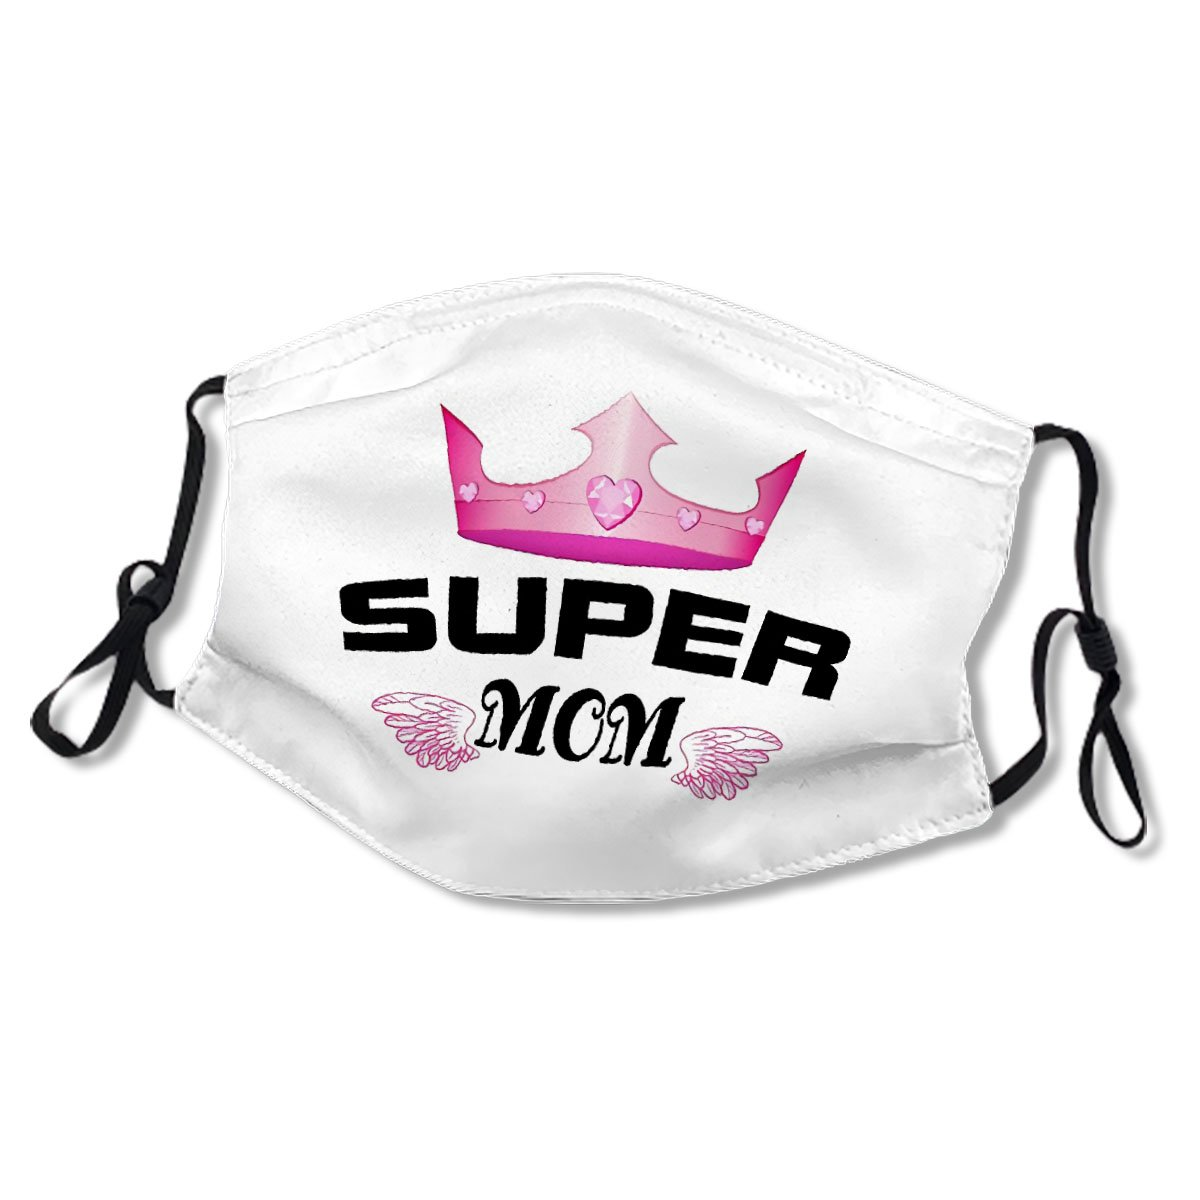 Super Mom Face Mask